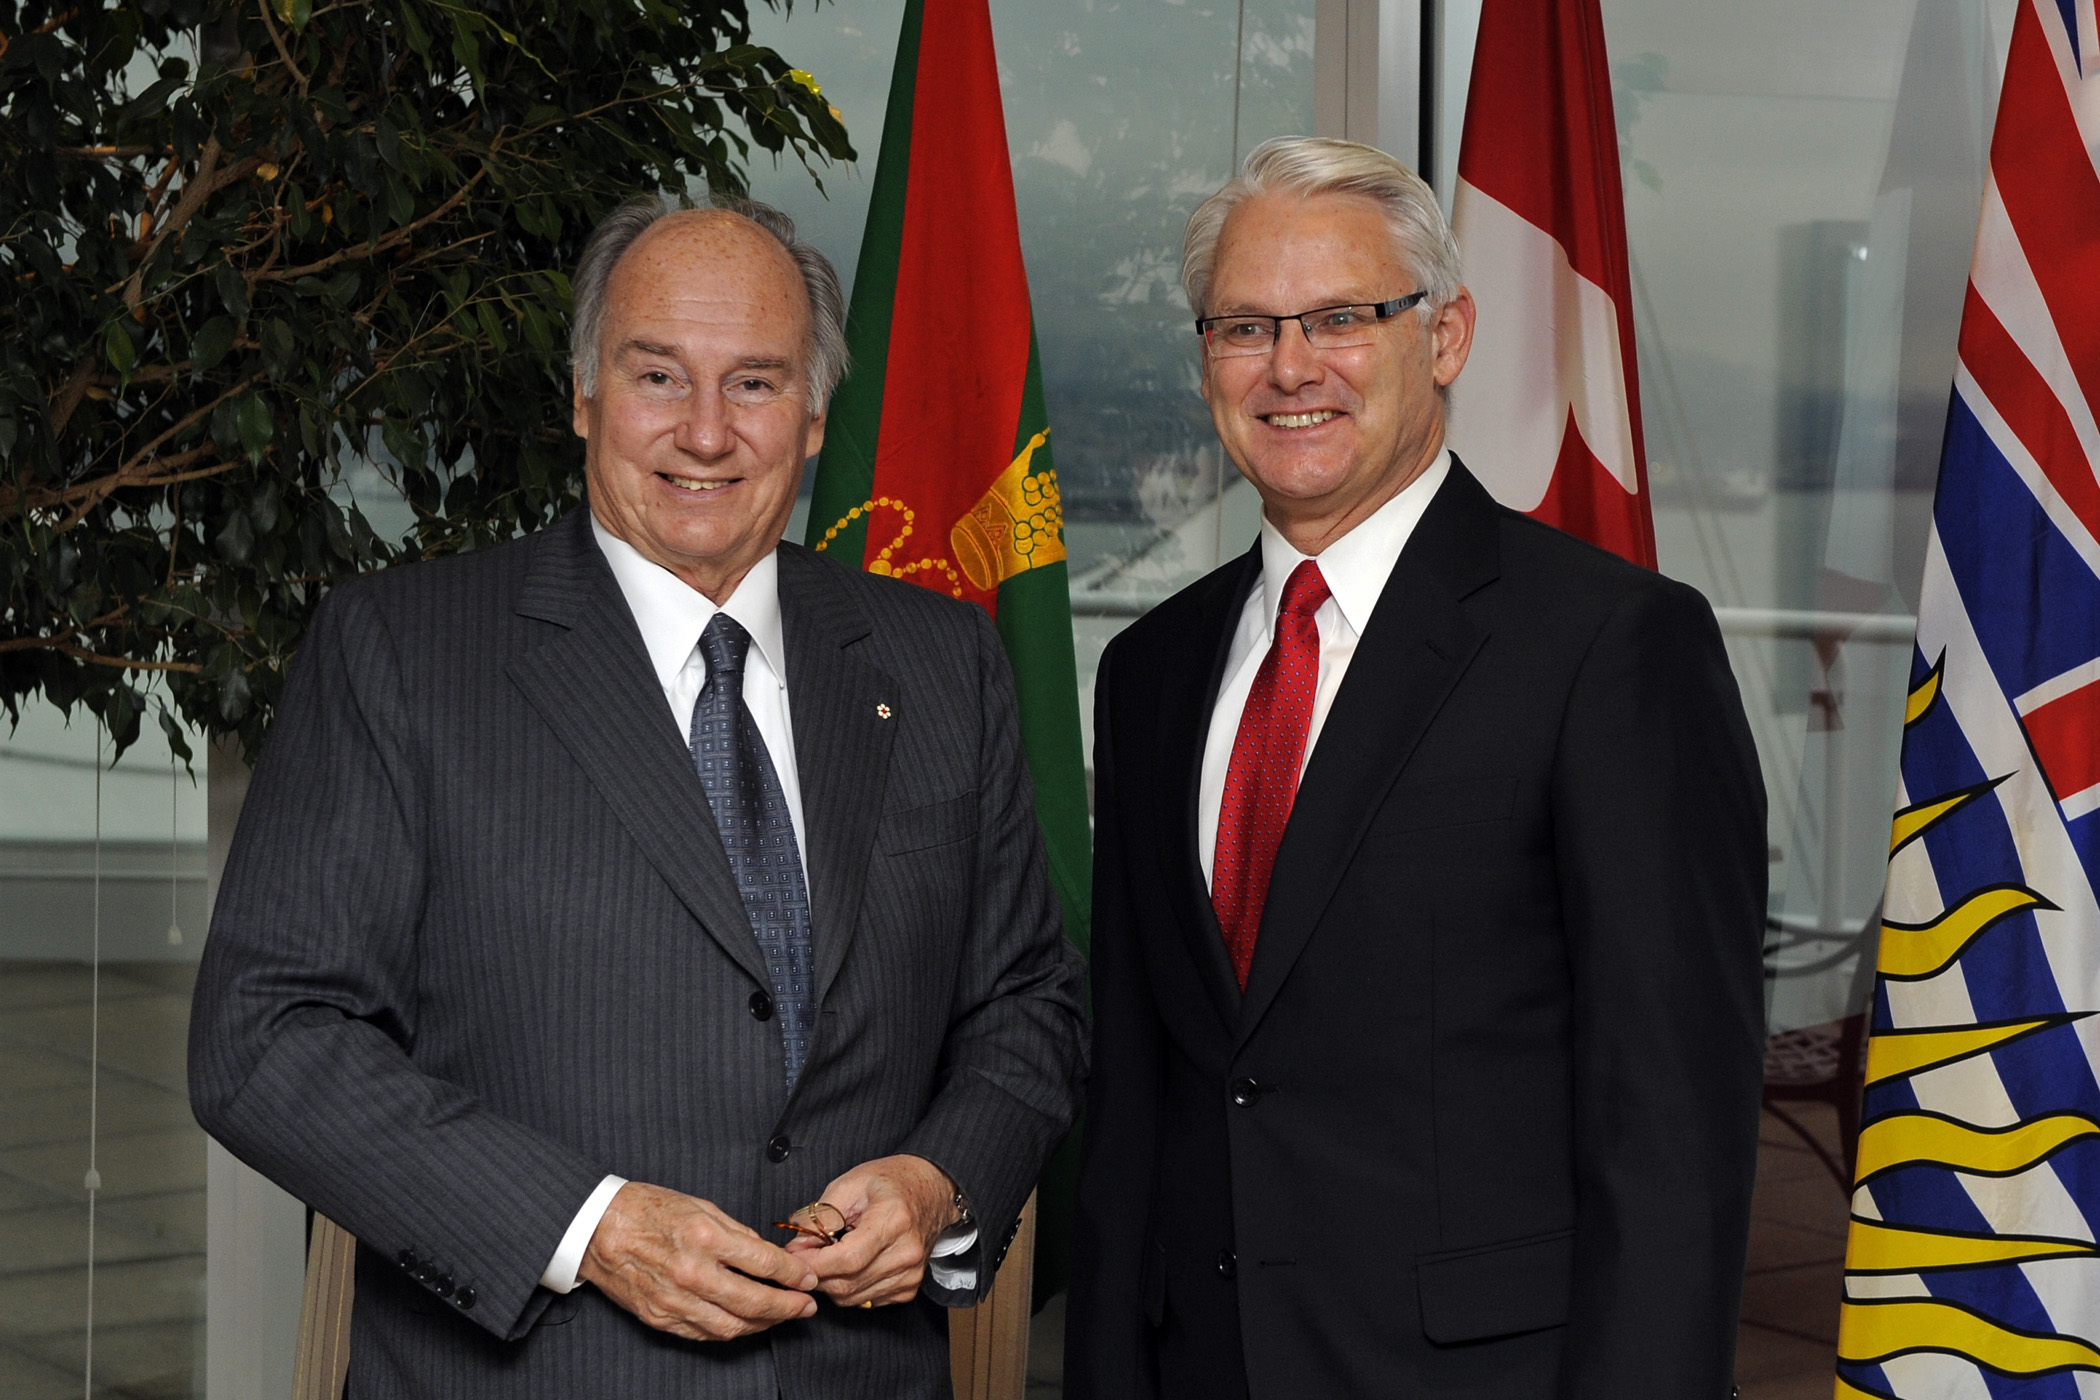 Premier Gordon Campbell hosts a luncheon with community, education and business leaders in honour of Mawlana Hazar Imam's Golden Jubilee visit to British Columbia. Photo: Gary Otte